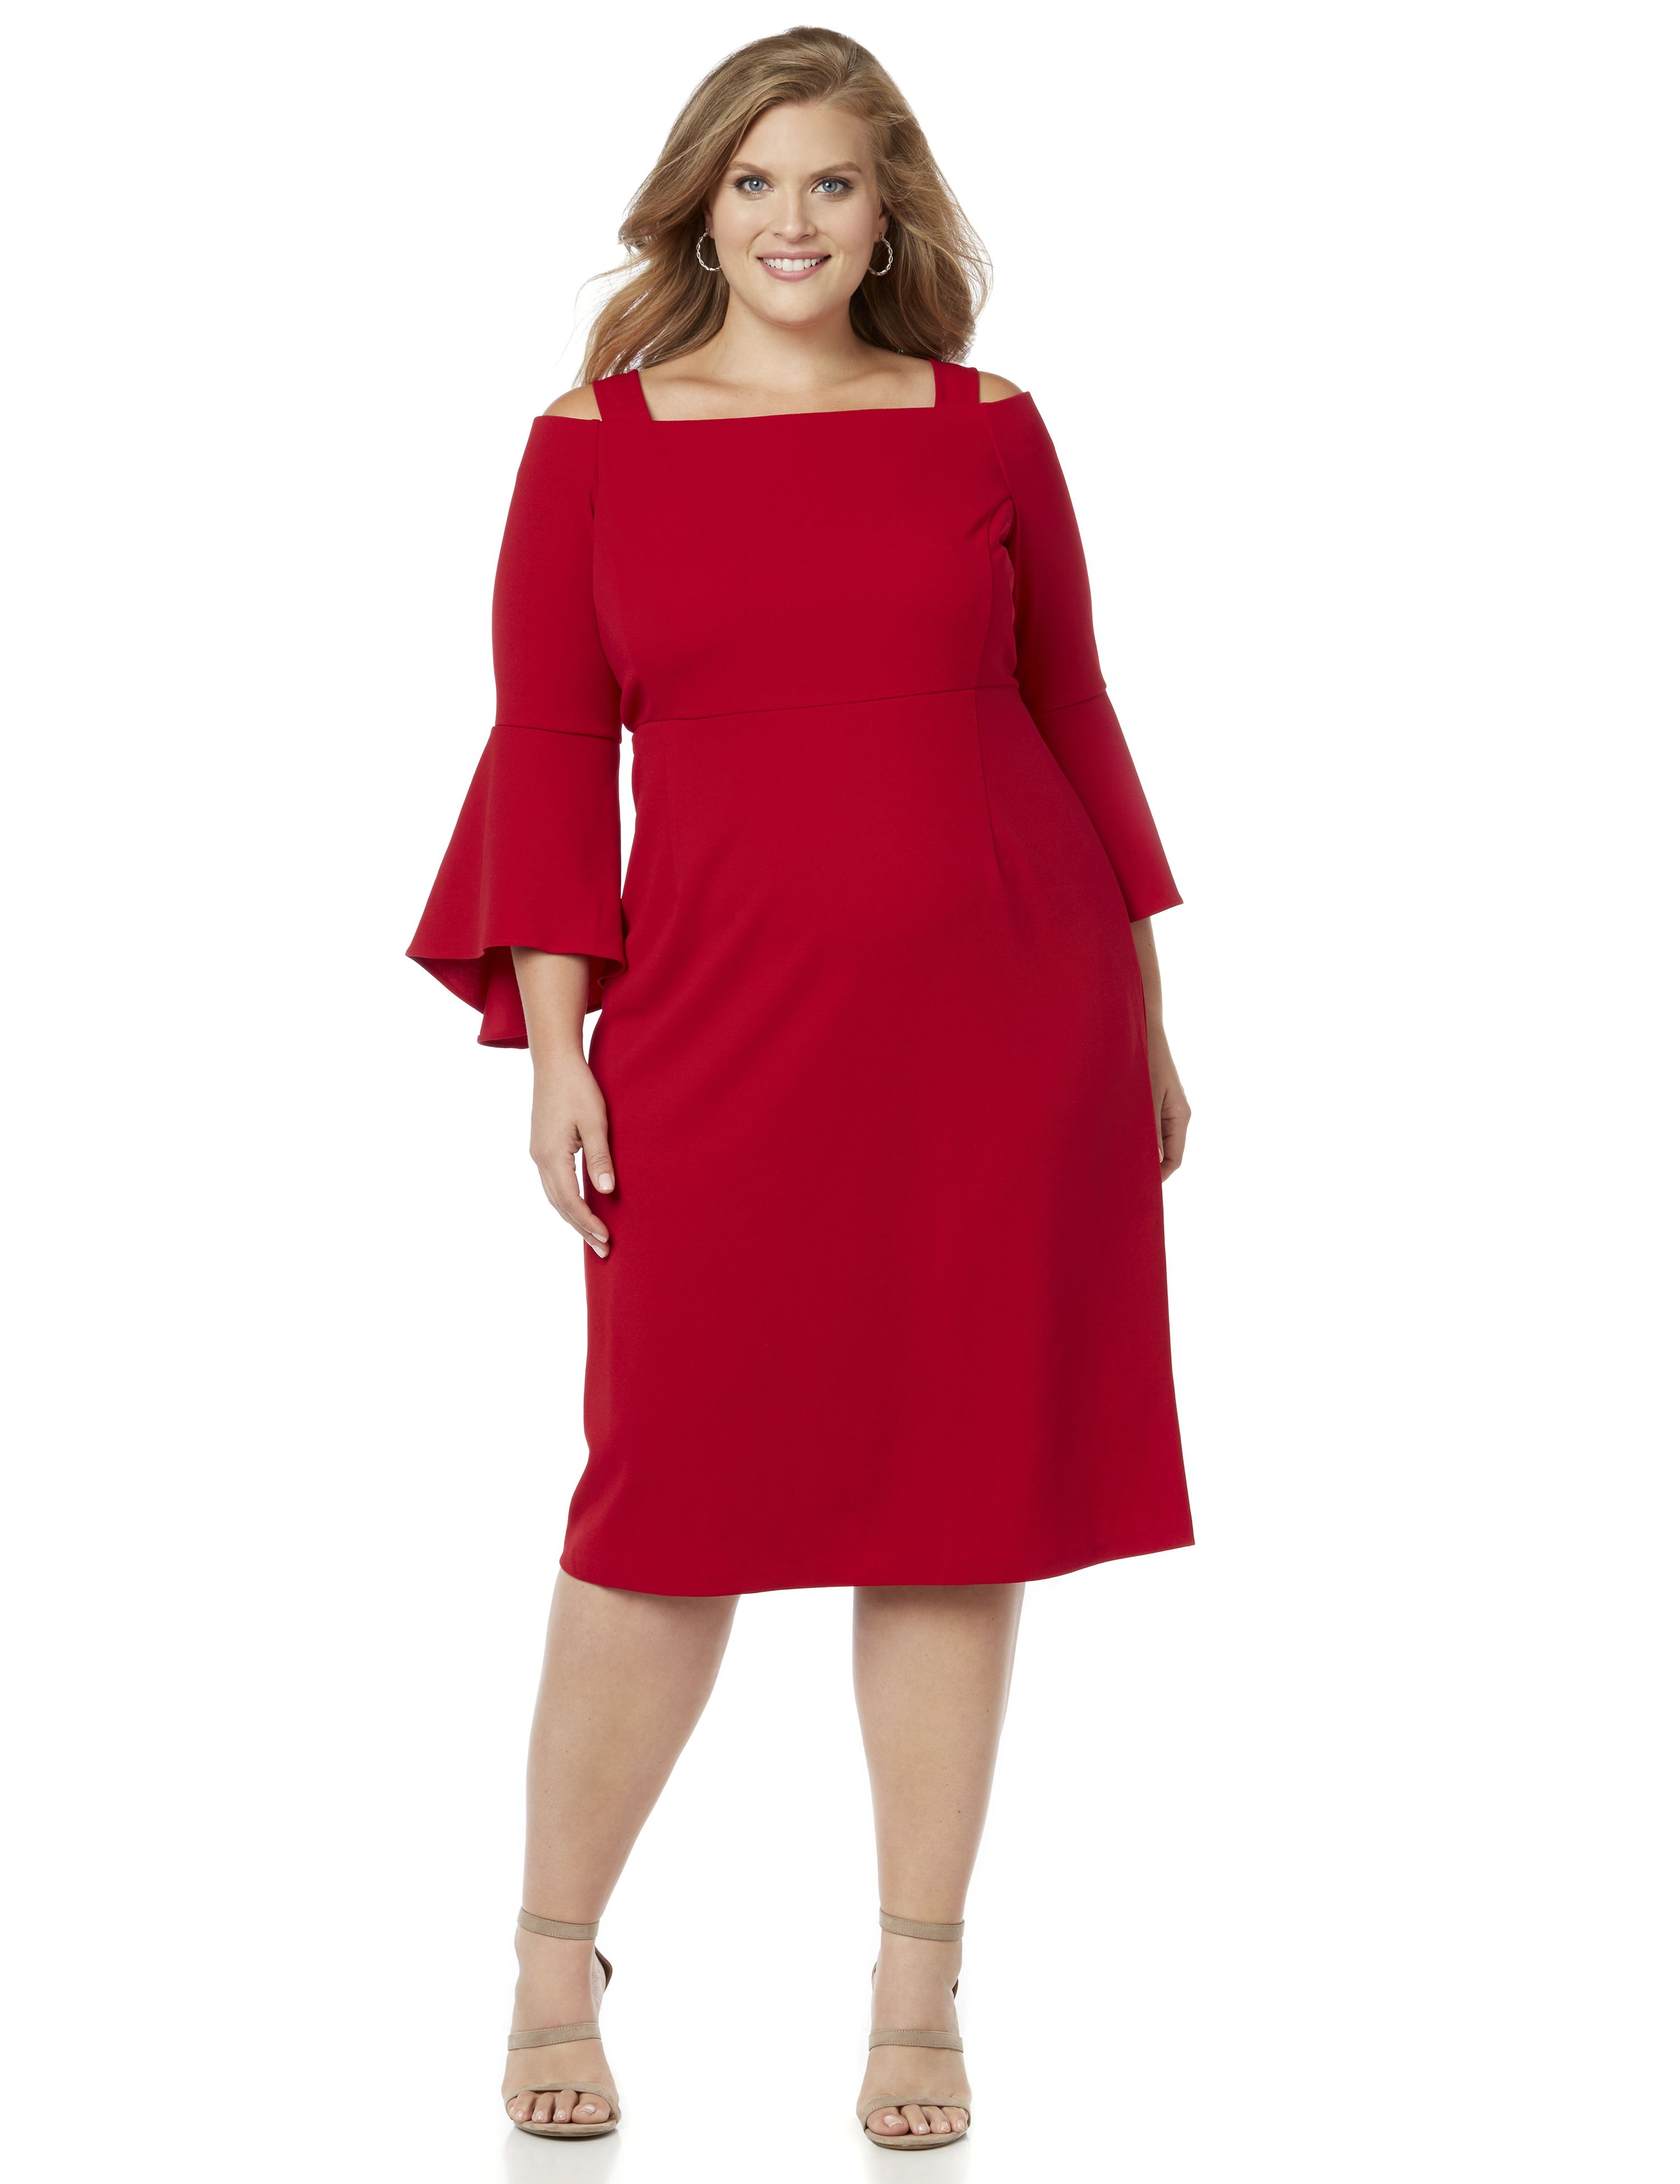 plus size dresses & gowns for women | catherines